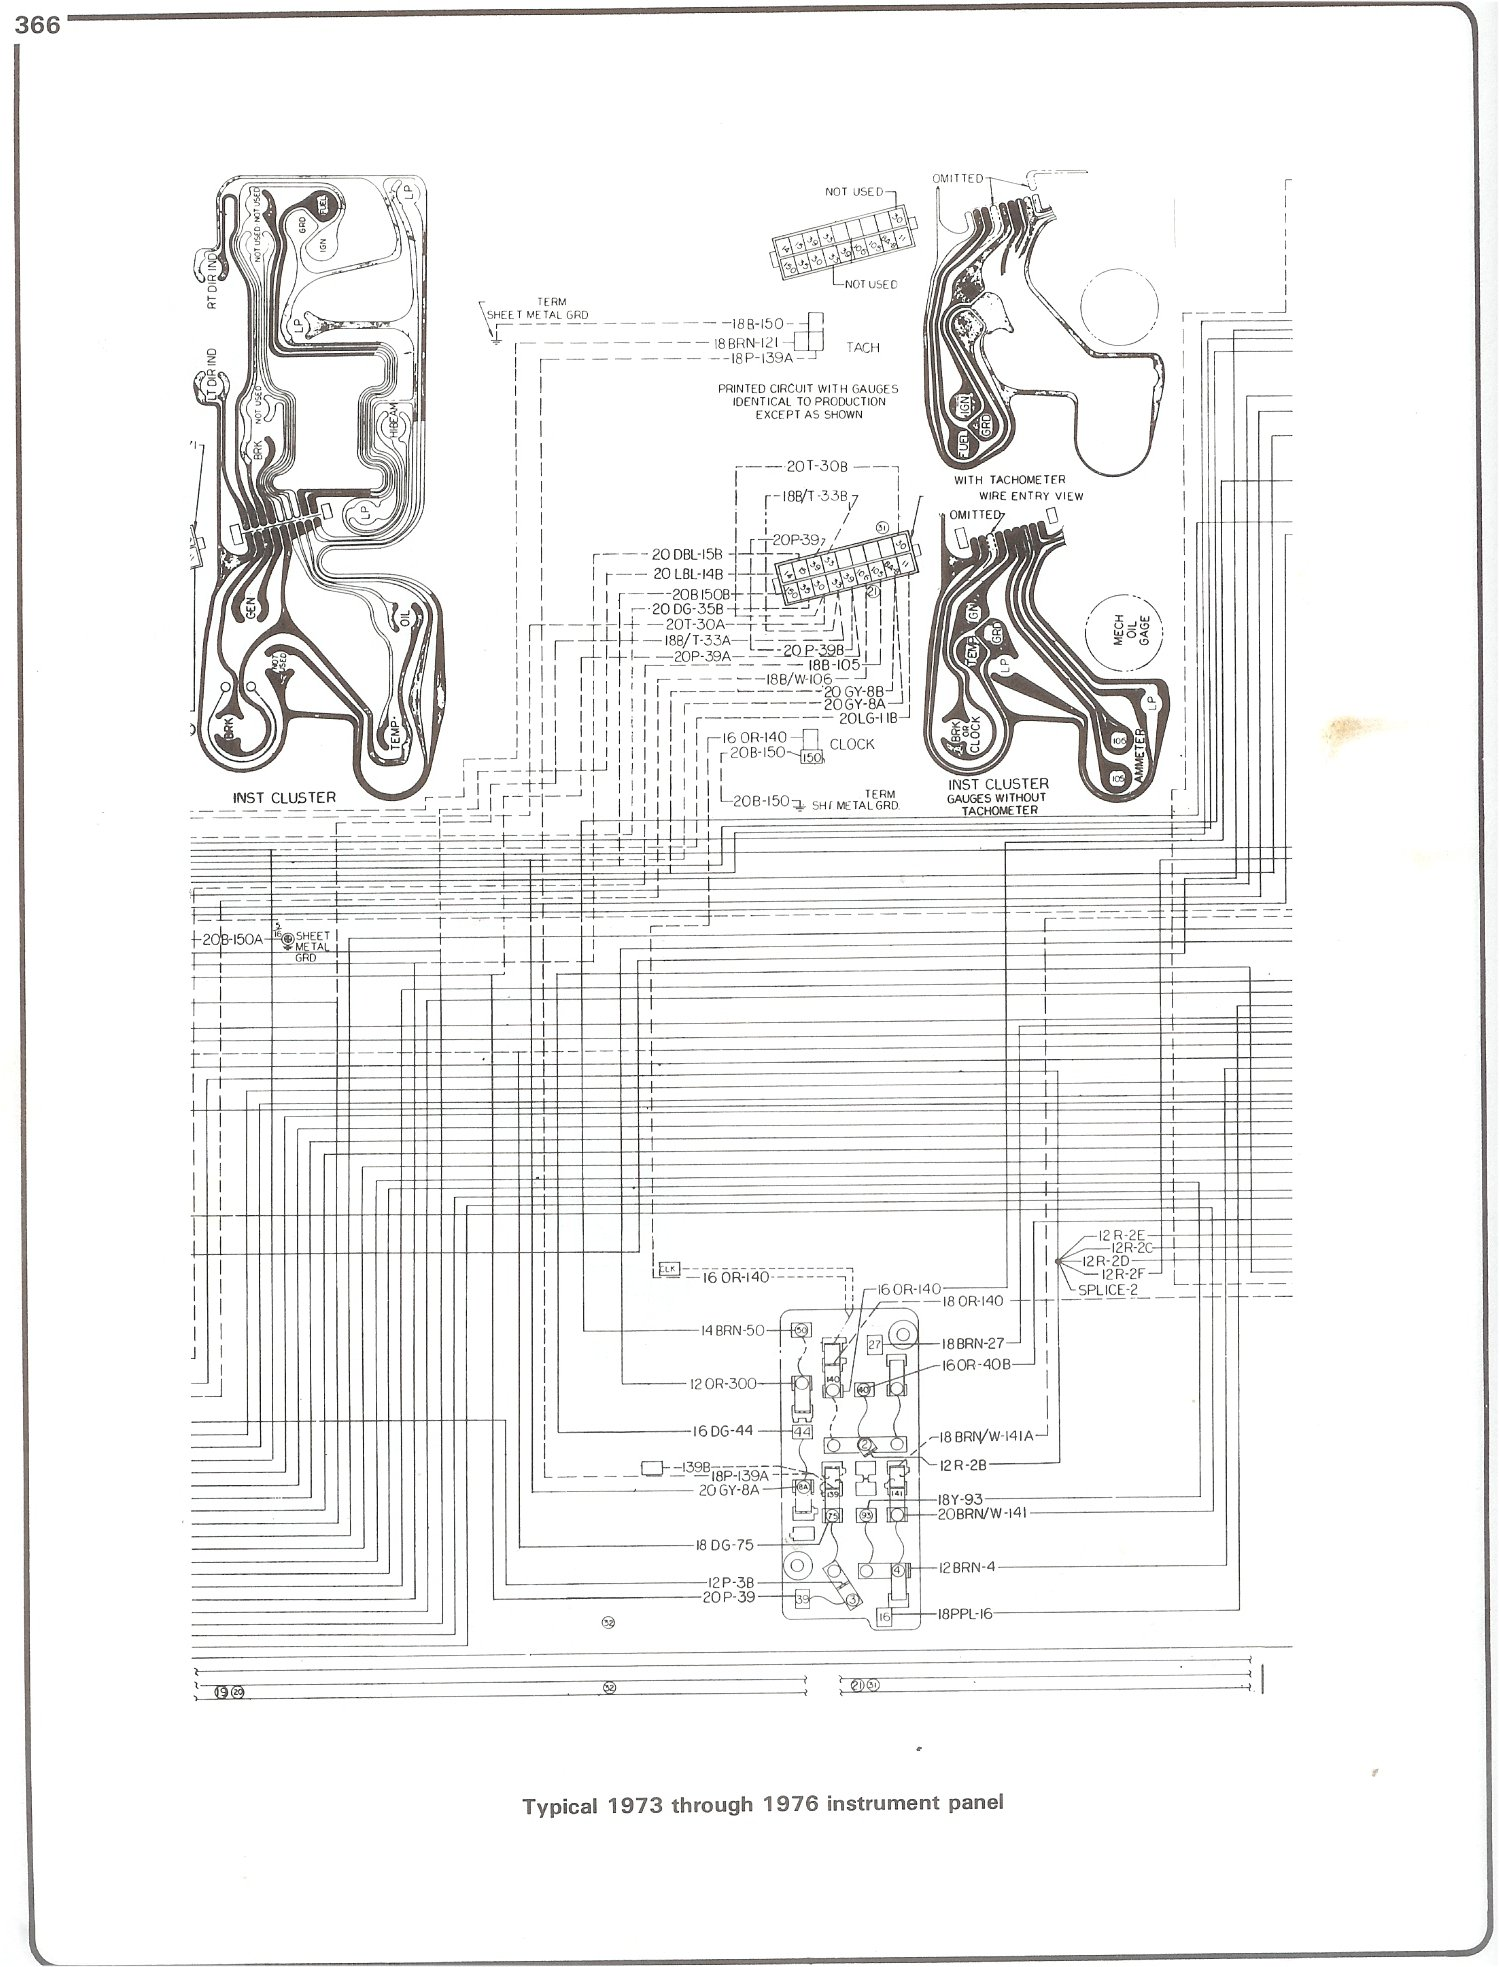 73 76_instrument complete 73 87 wiring diagrams 1985 chevy c30 wiring diagram at gsmportal.co